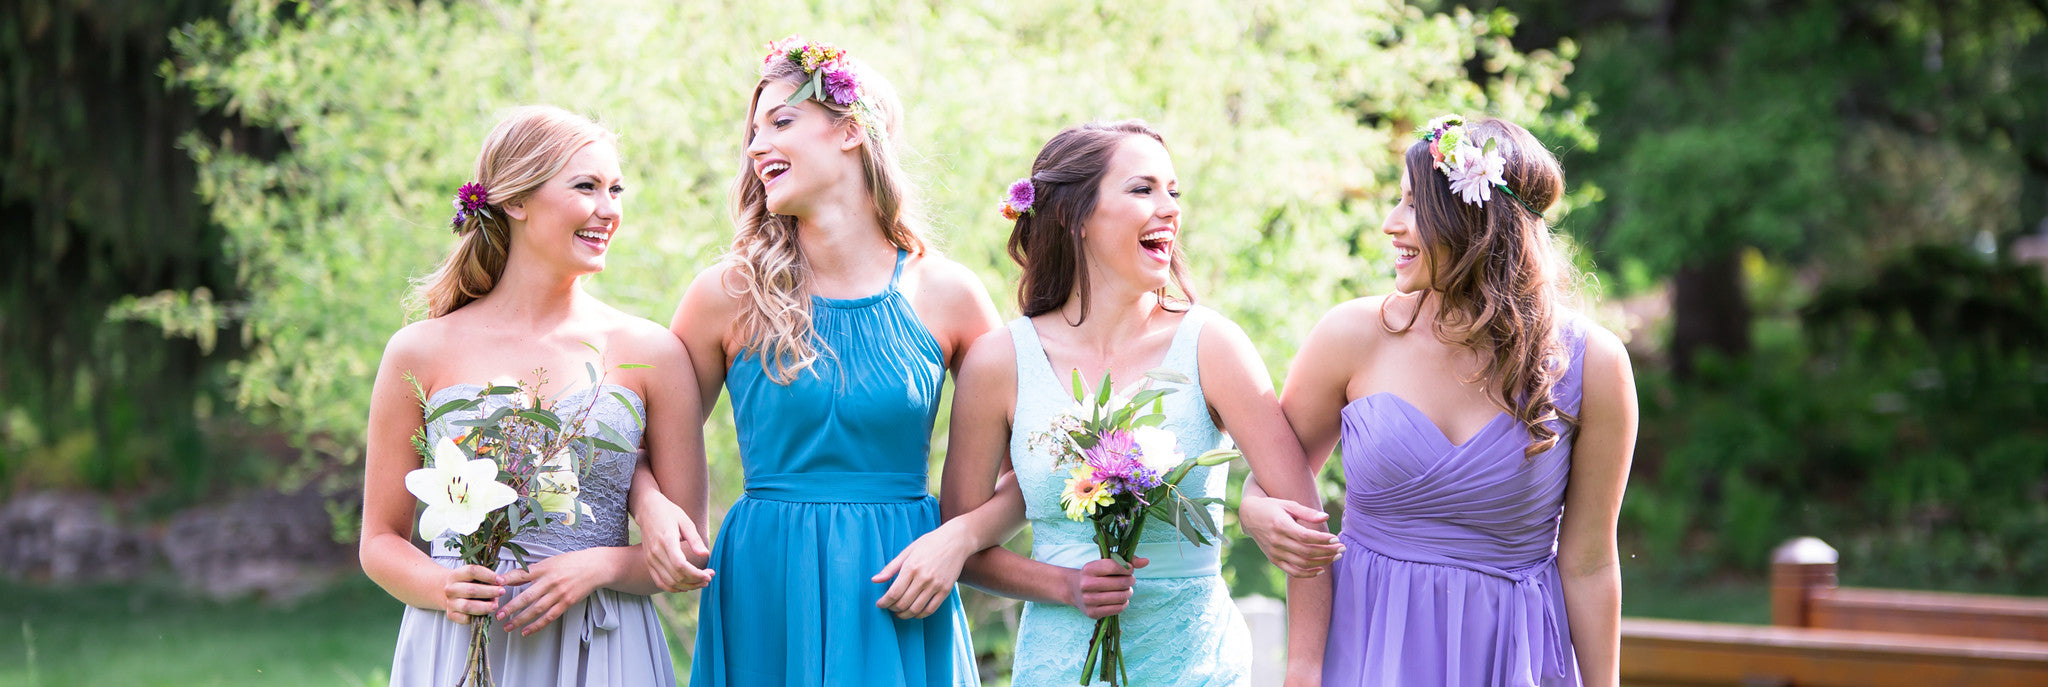 Kennedy Blue Mix and Match Bridesmaid Dresses